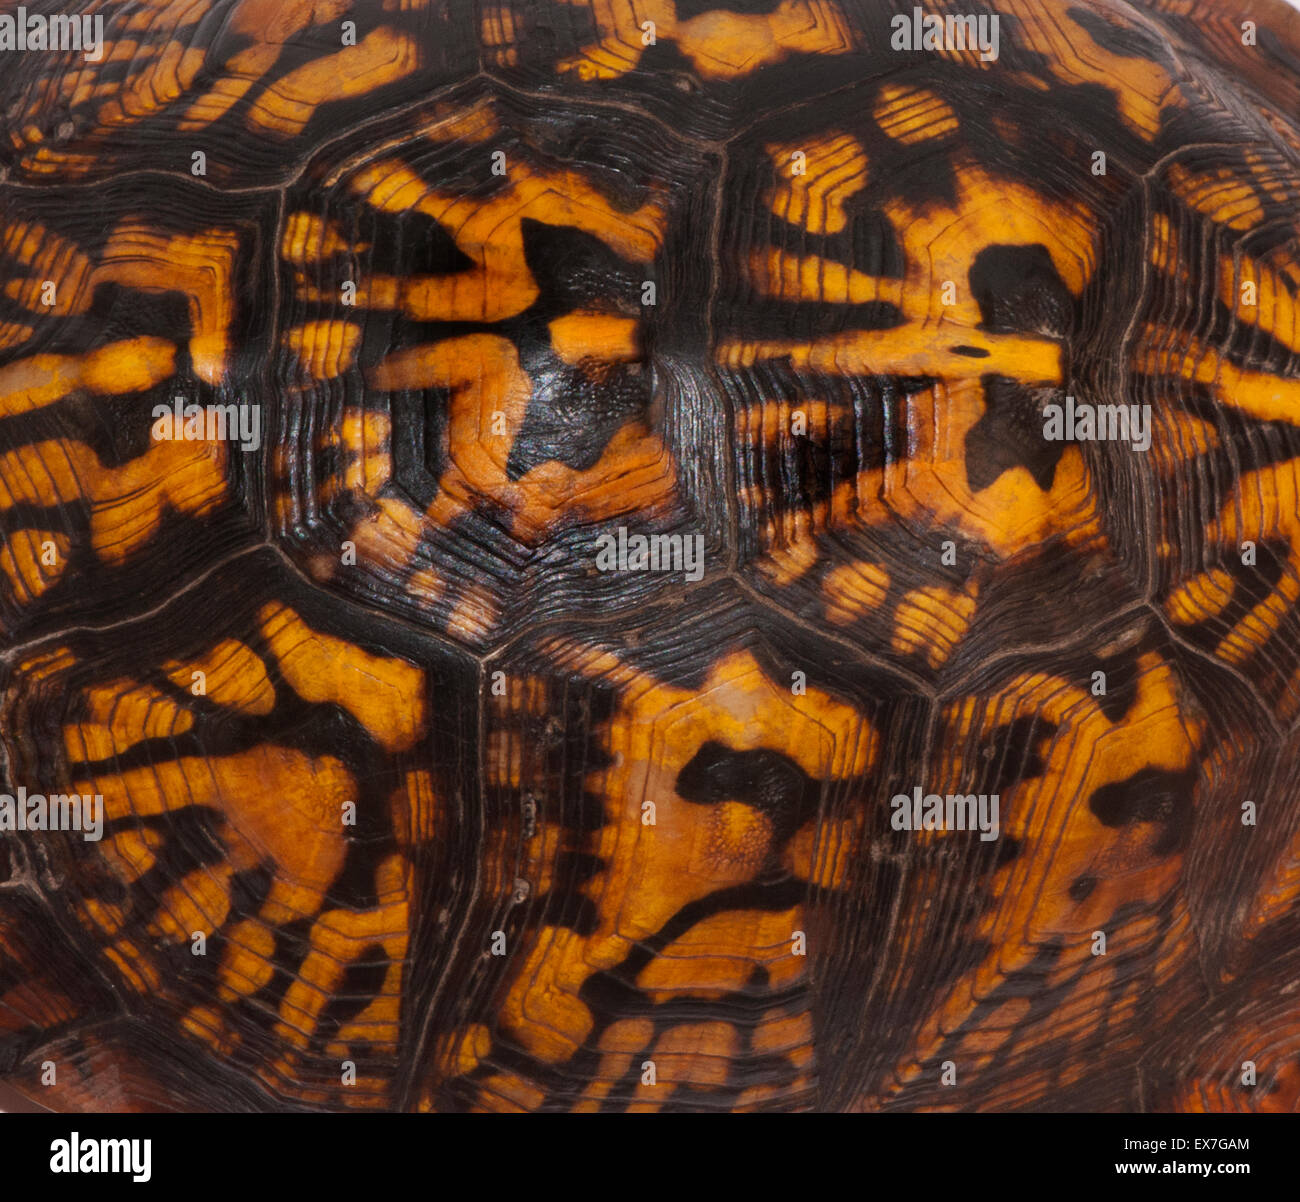 Turtle Shell Stock Photos & Turtle Shell Stock Images - Alamy